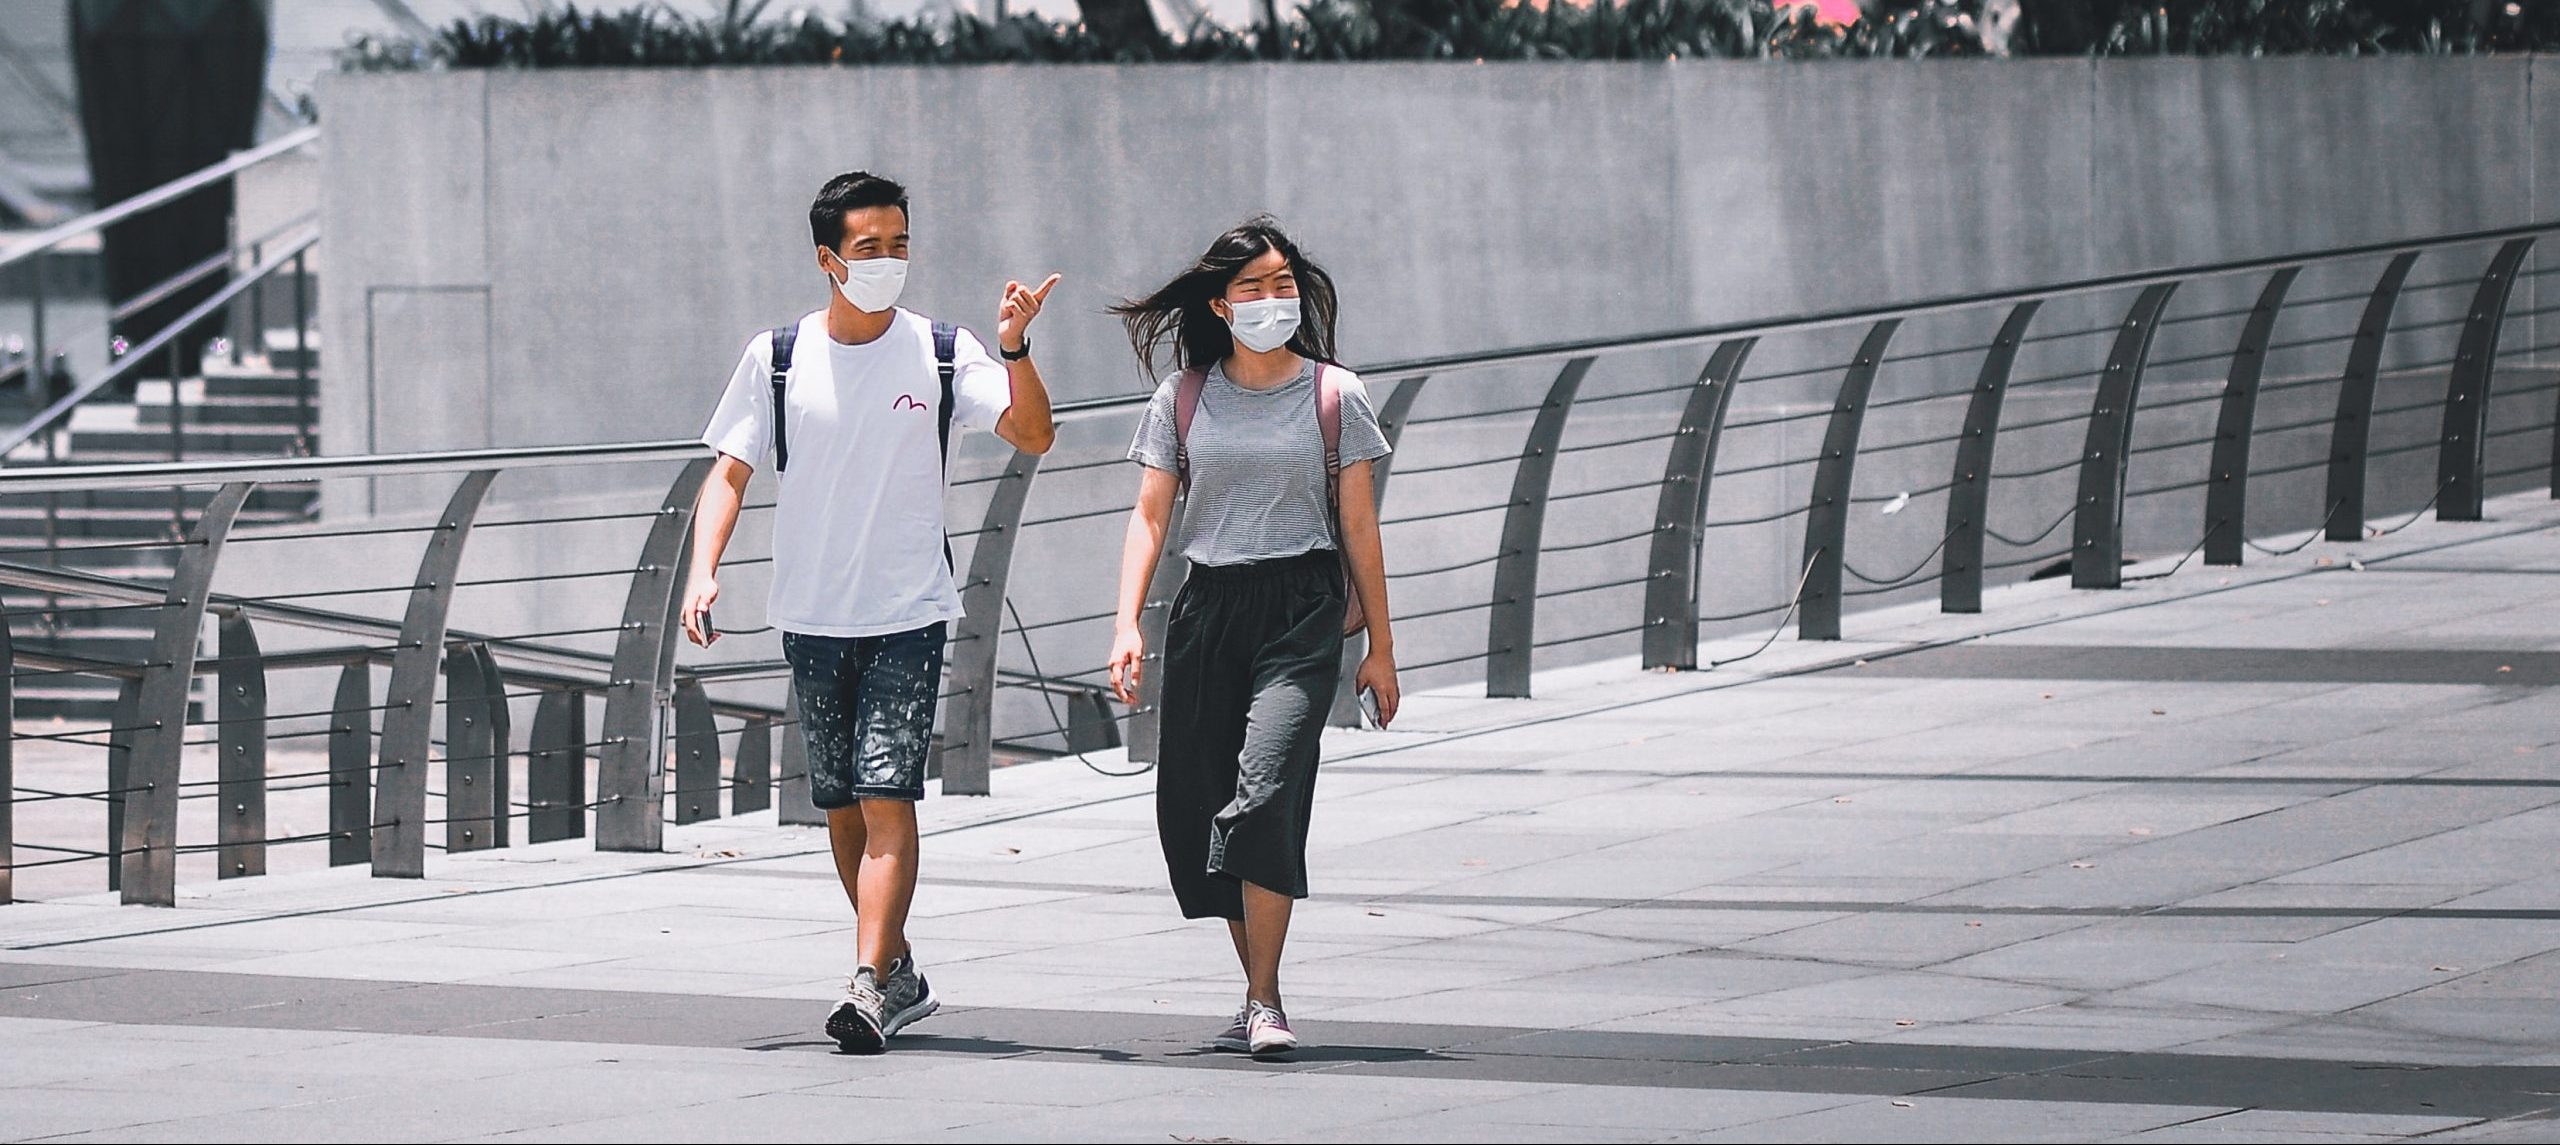 4 Tips for air travel by plane during a pandemic